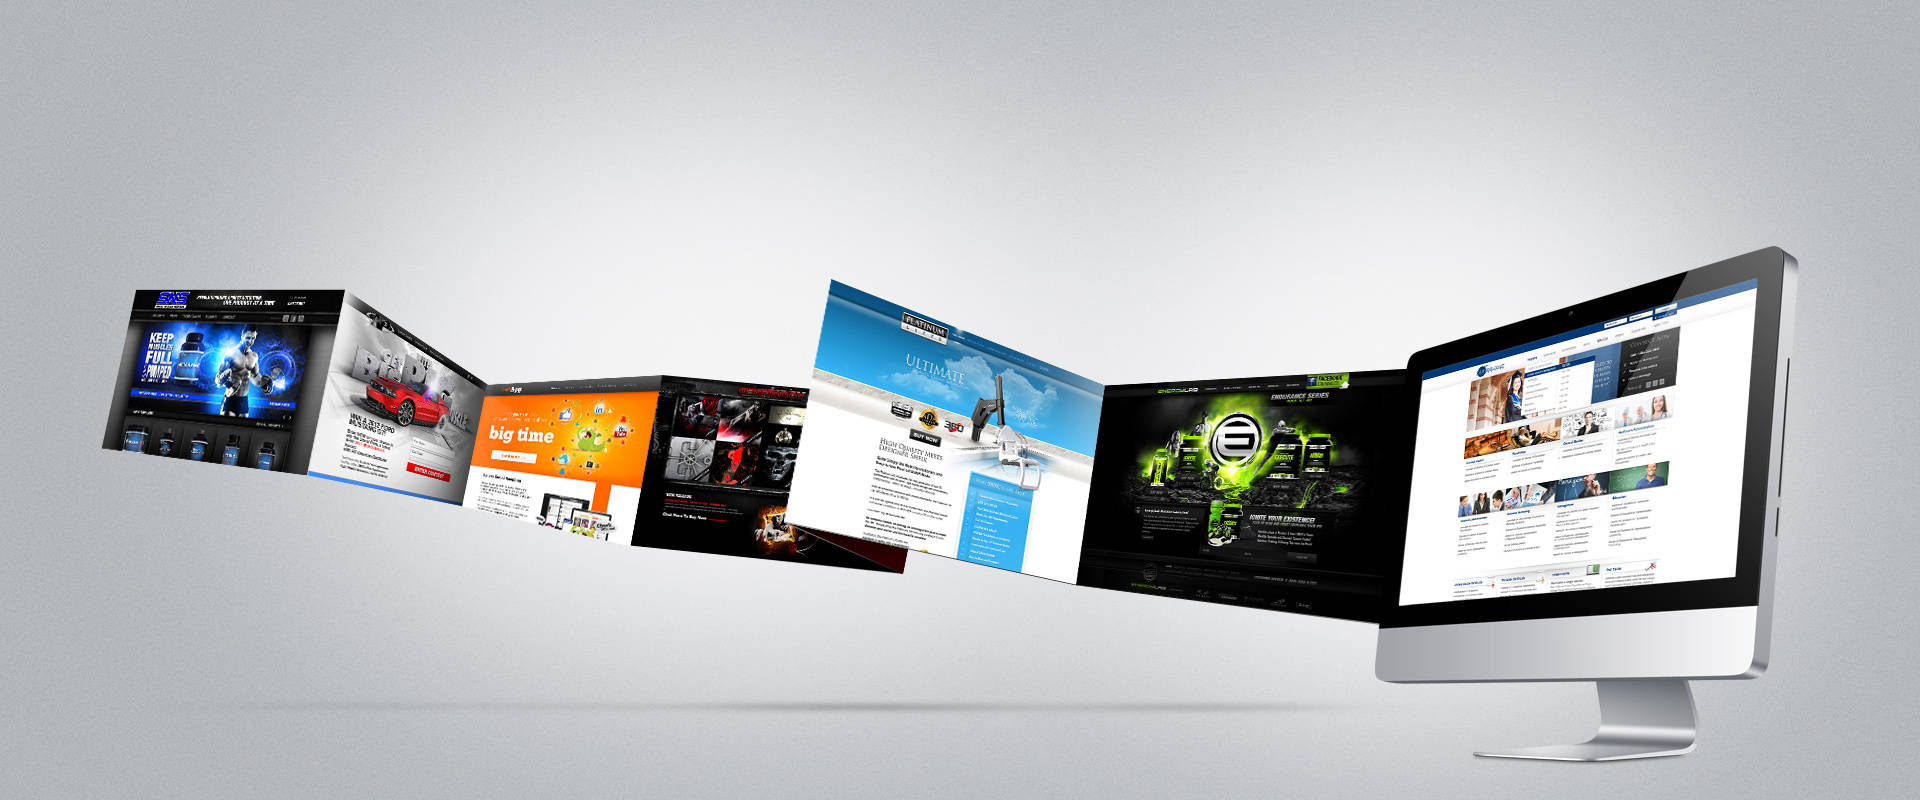 5 Must Have Elements in a Modern Dynamic Website Design